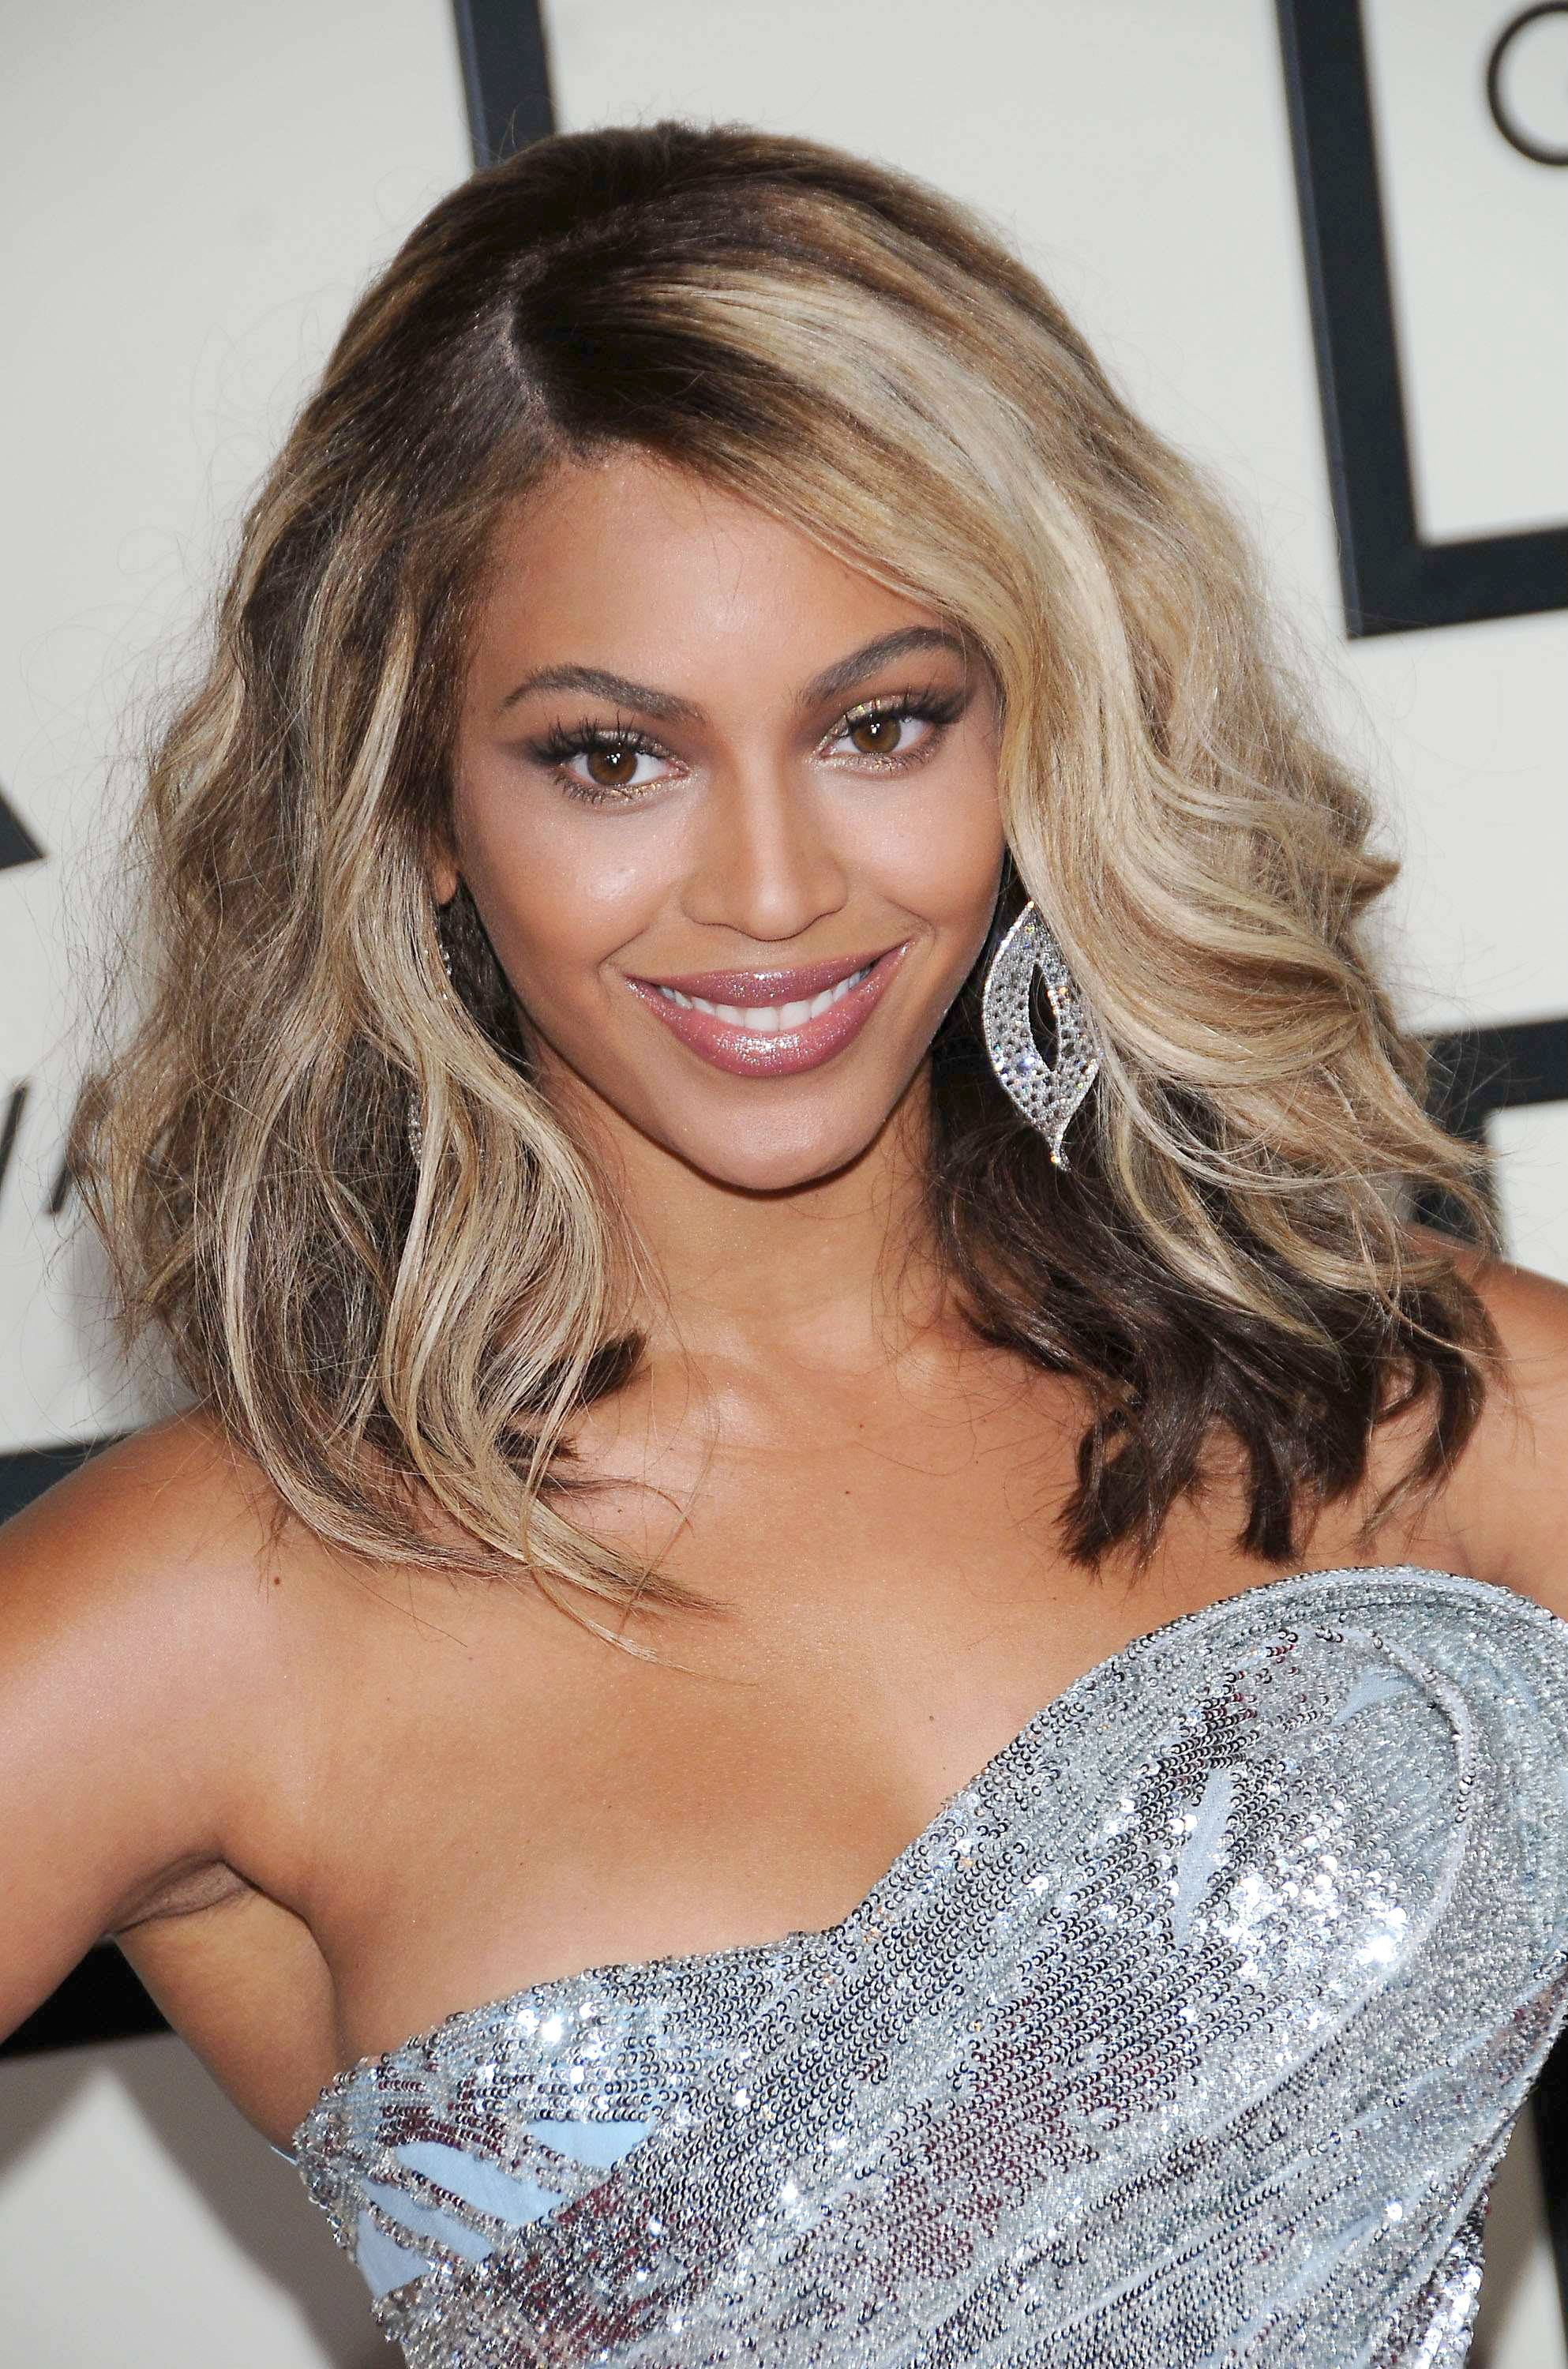 Beyonce Grammy Awards with shoulder length wavy hair with bold blonde highlights